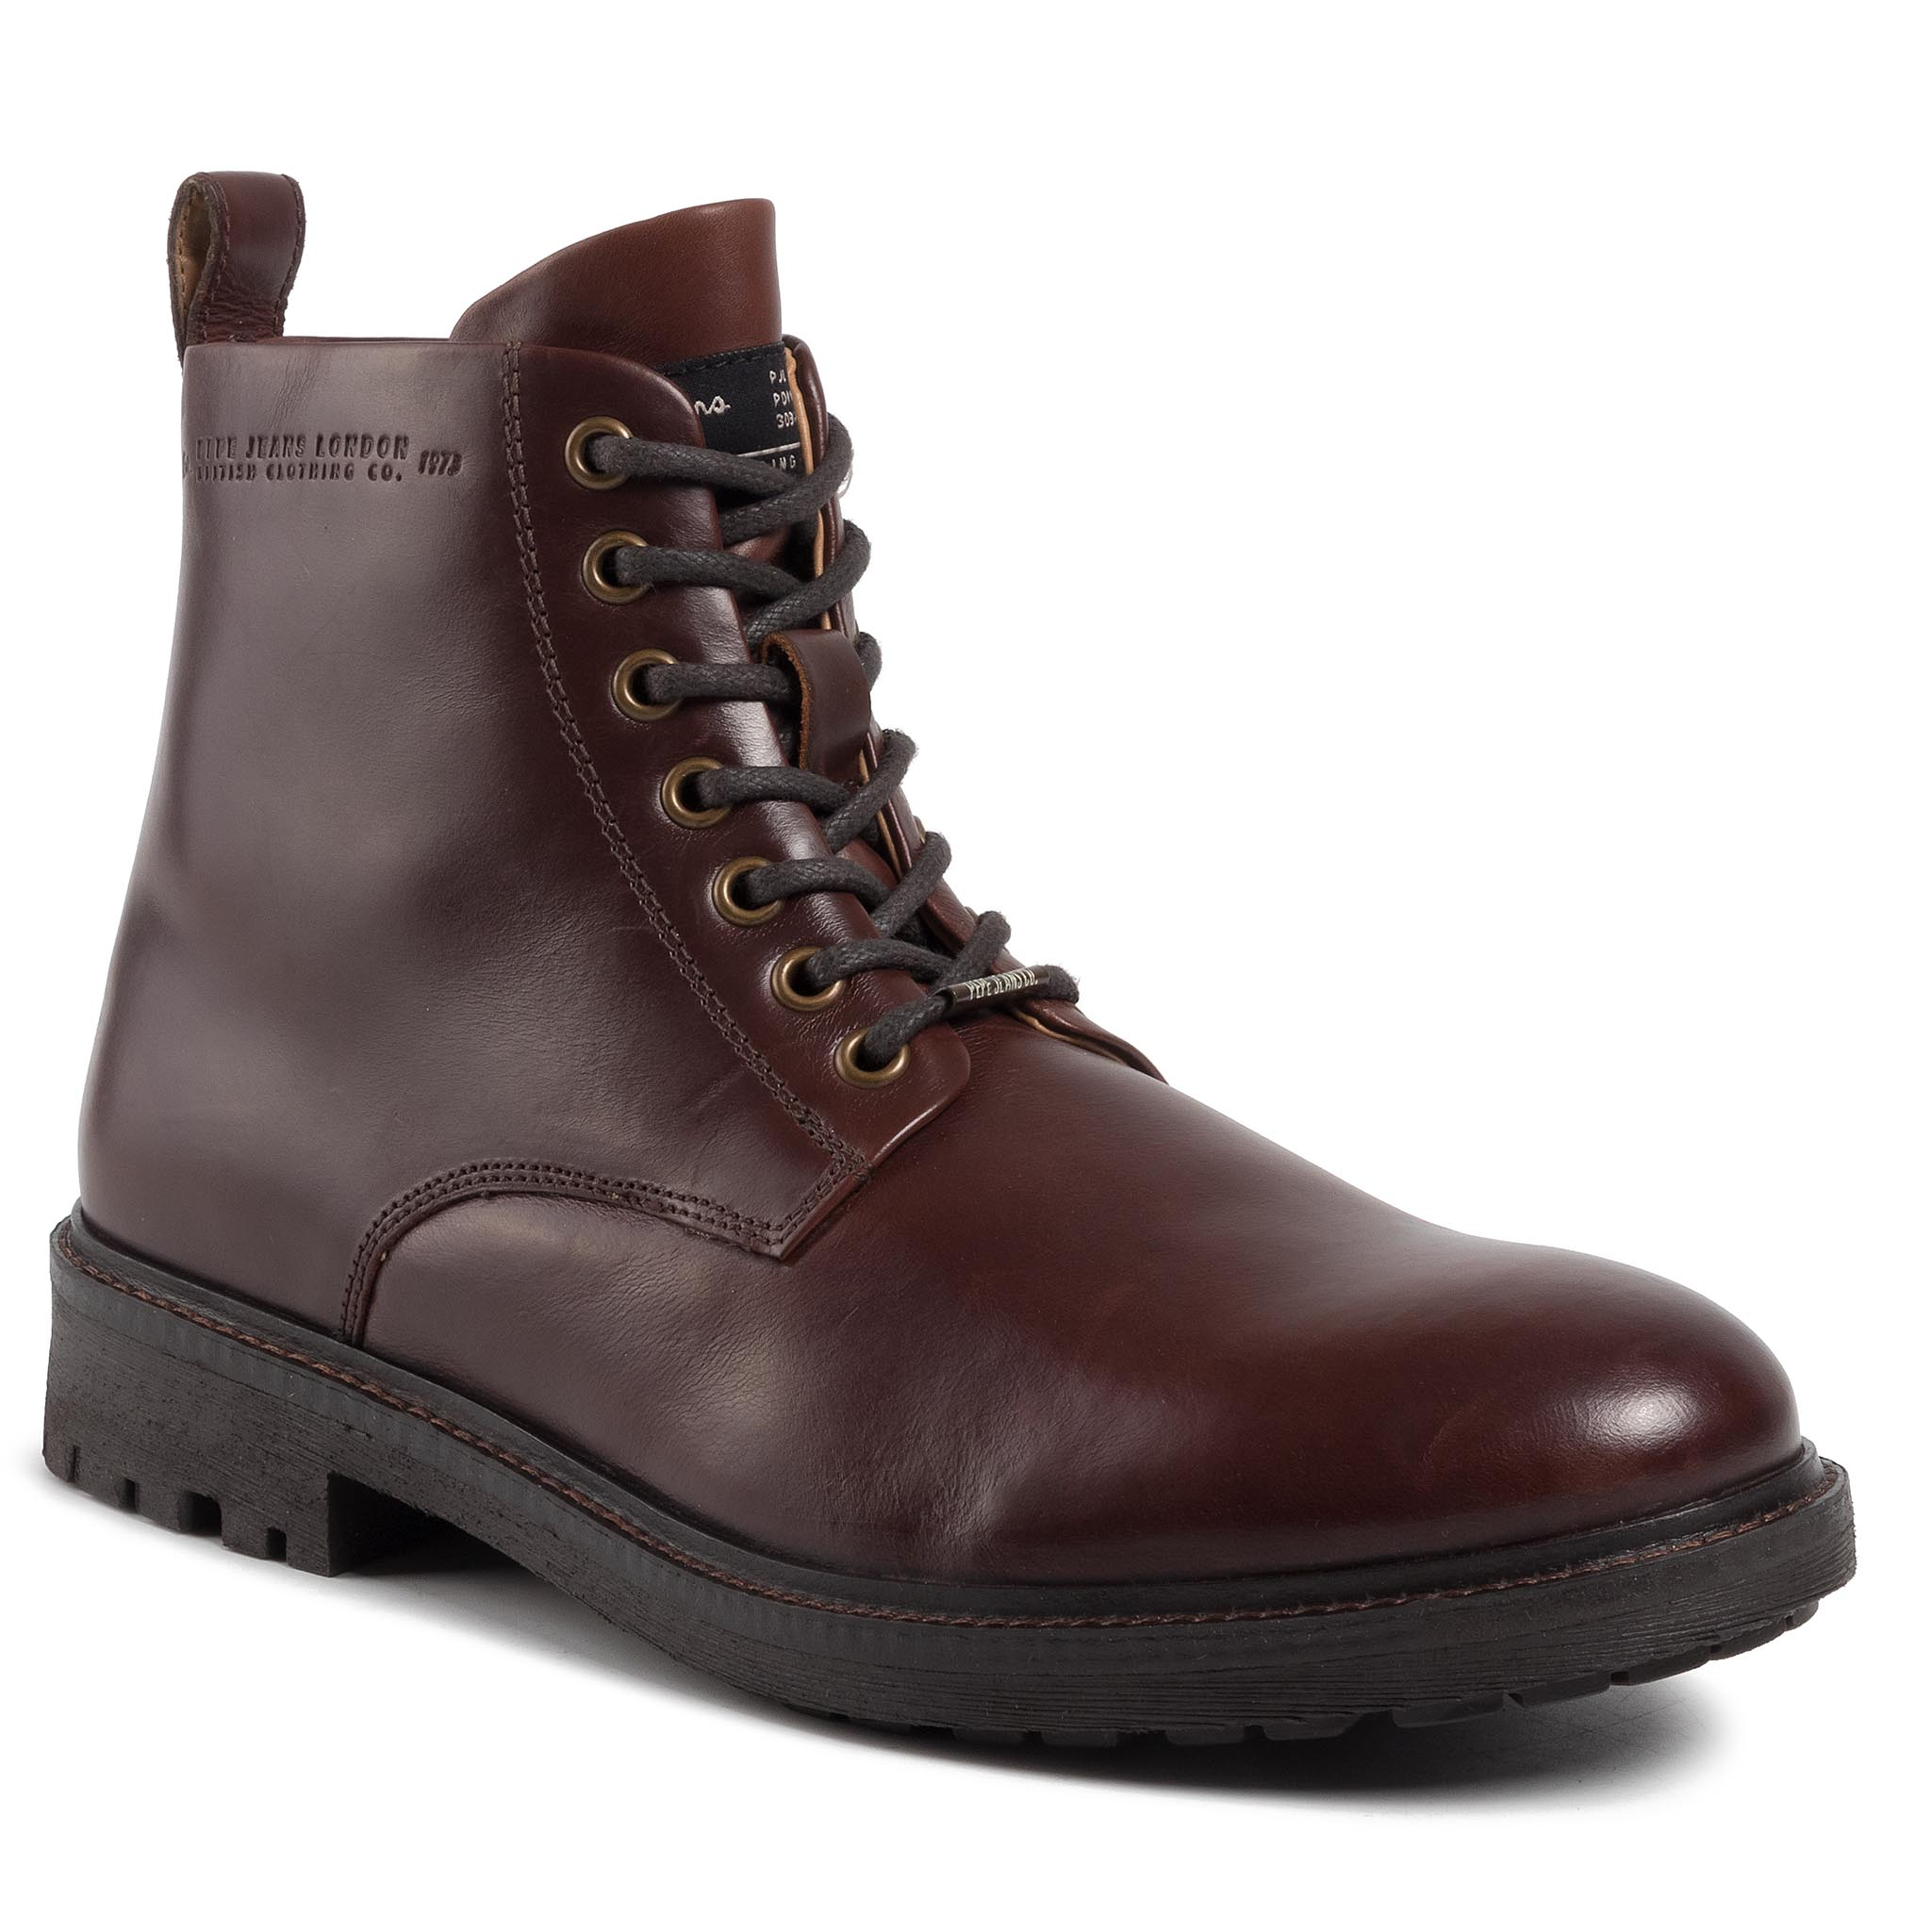 Trappers Pepe Jeans - Porter Boot Basic Pms50179 Burgundy 299 imagine